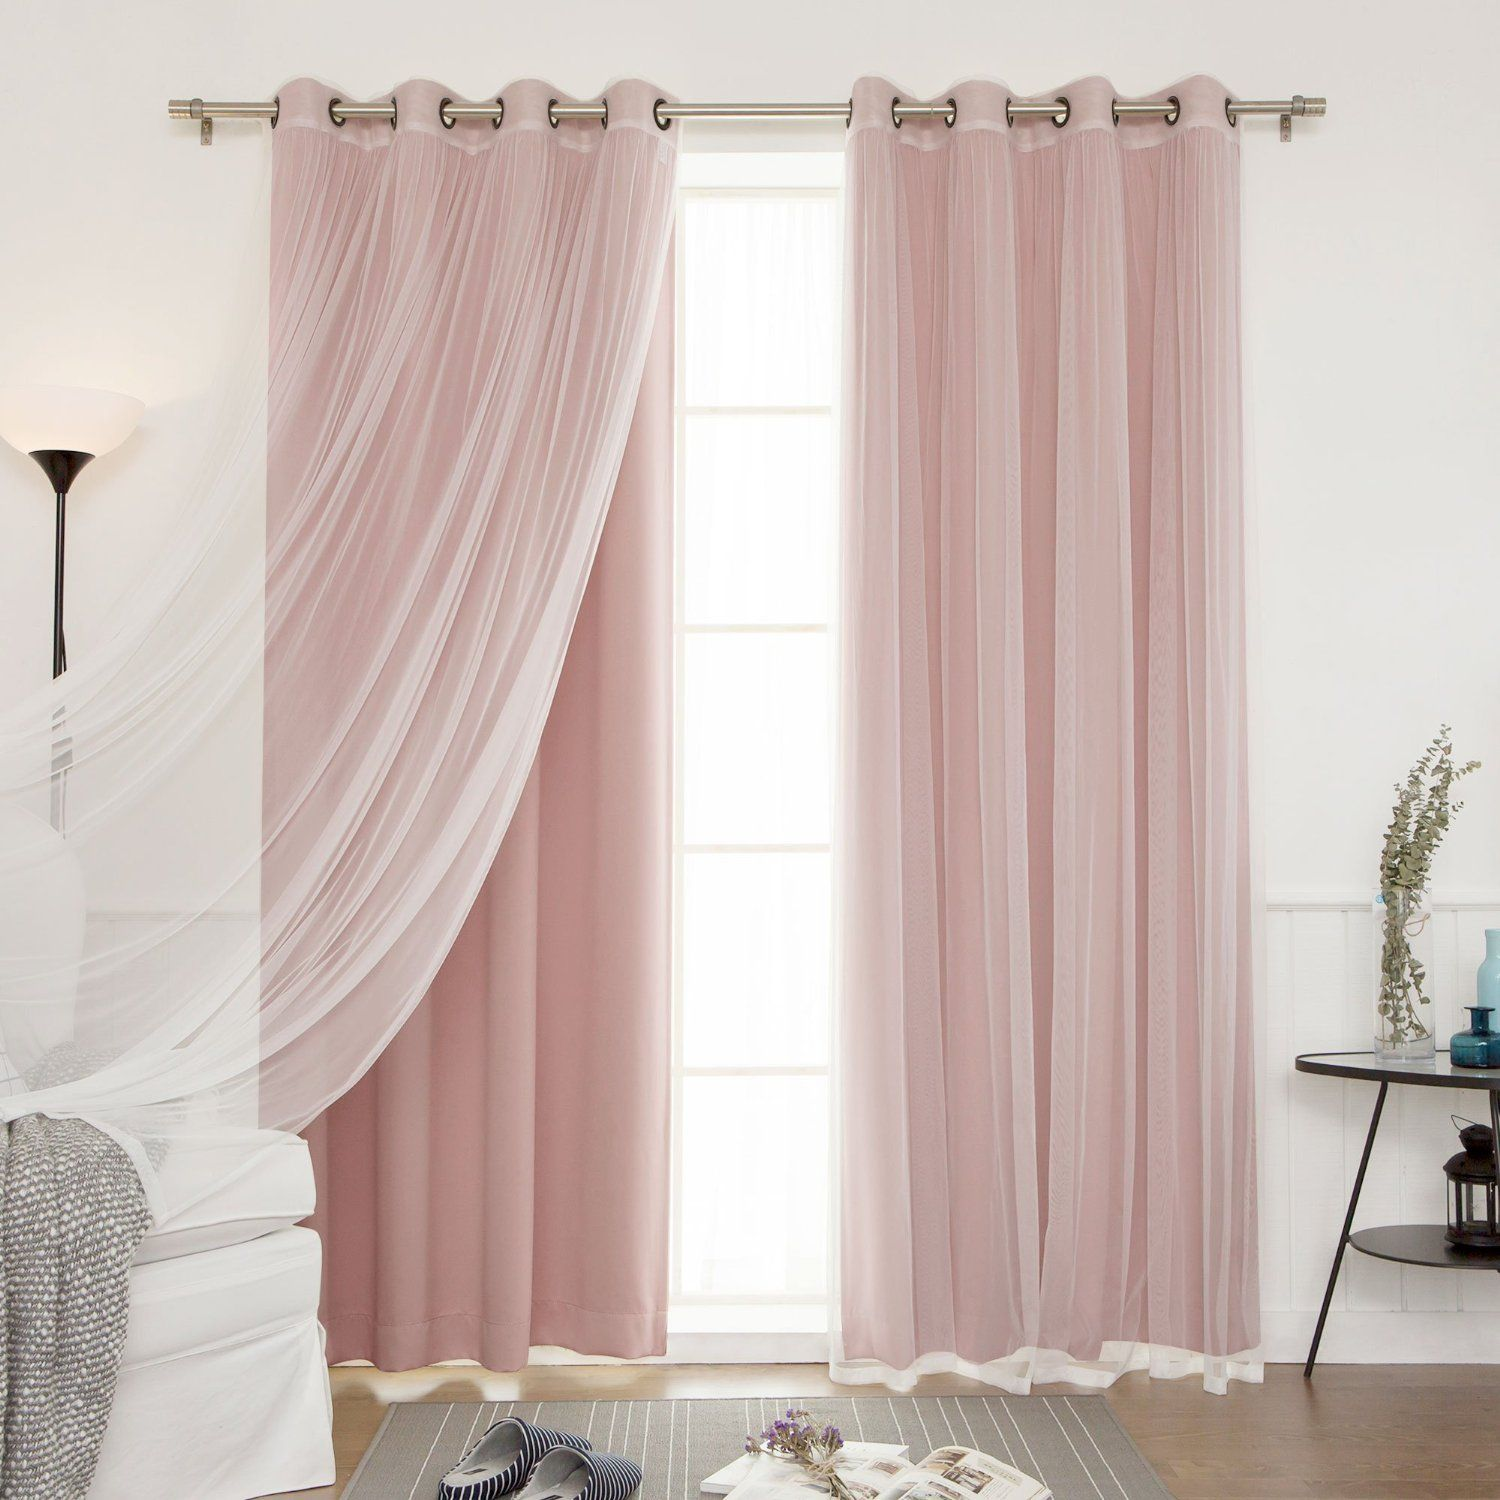 Tab Top Curtains Amazon Amazon Best Home Fashion Mix Match Tulle Sheer Lace